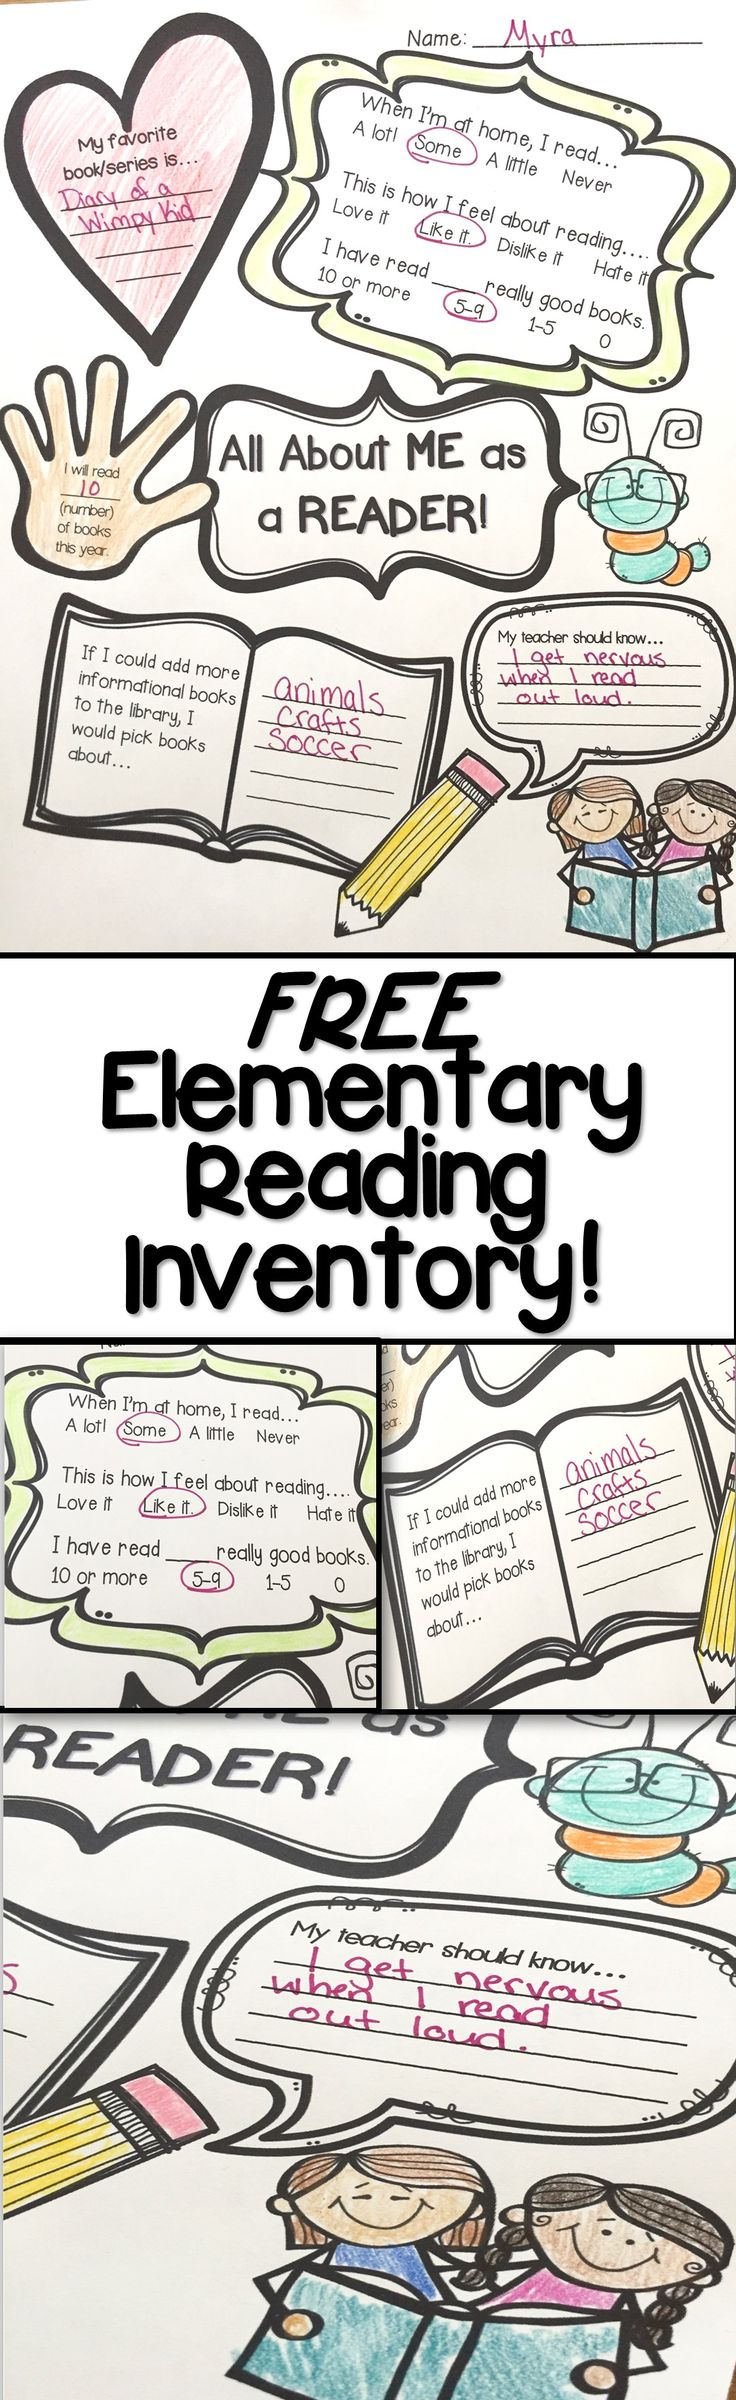 image about Printable Informal Reading Inventory titled All Around Me as a READER! Studying Stock Quality 3-5 Math